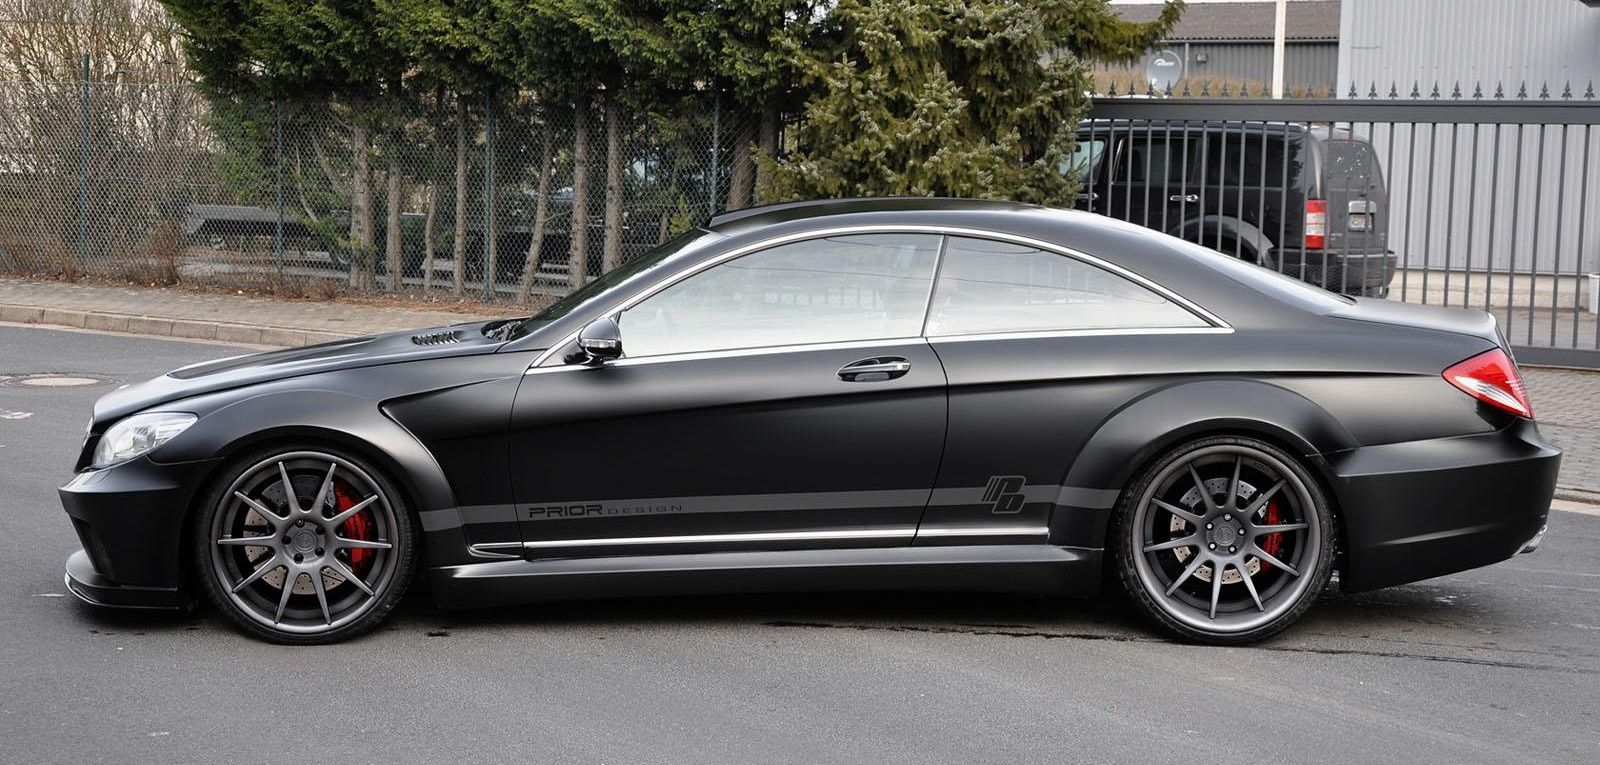 Long Term C300 Review Forum Member besides 1033564 mkb Releases 750hp Upgrade For Mercedes Cl65 Amg additionally 2001 Mercedes Benz Cl600 For Sale in addition C 63 Amg Black Series Nl 2 in addition 2013 Mkz. on cl65 amg coupe